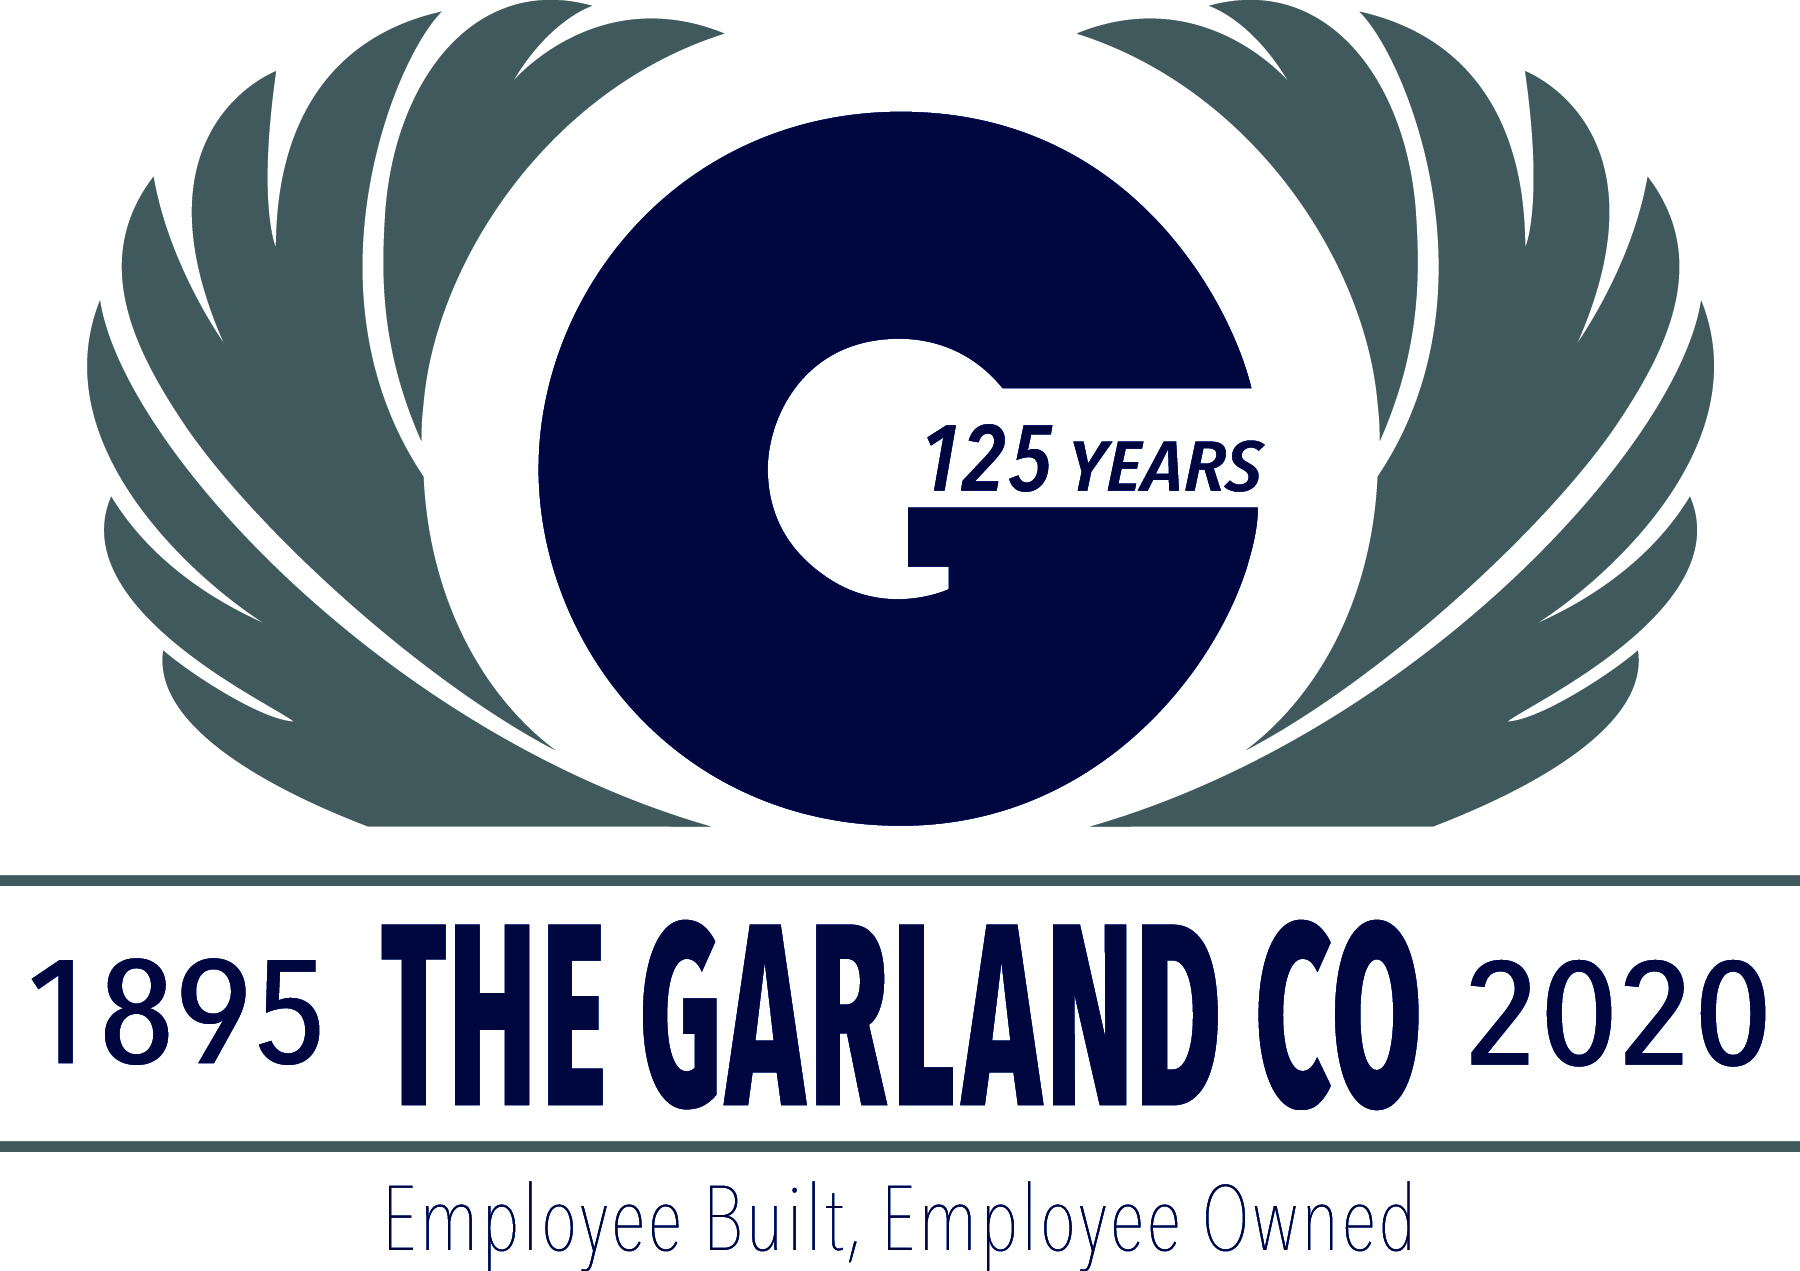 The Garland Co. Celebrates 125th Anniversary by Giving Back to the Community